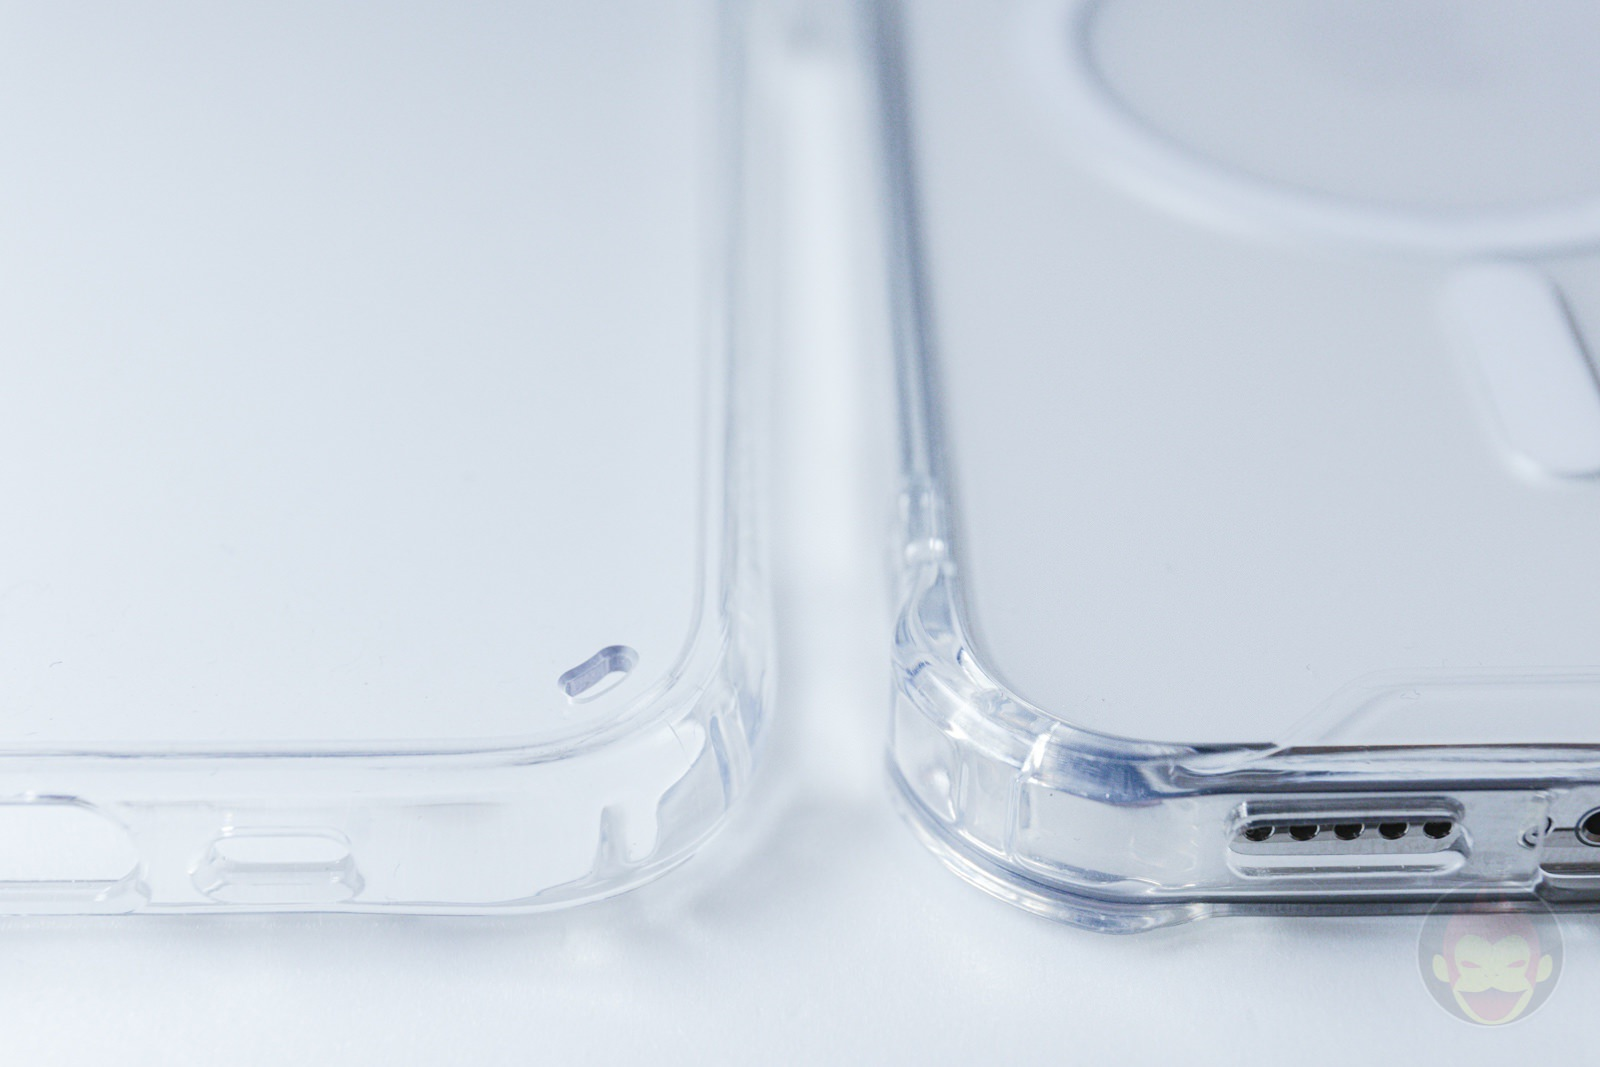 Beyeah iPhone12Pro Clear MagSafe Case Review 02